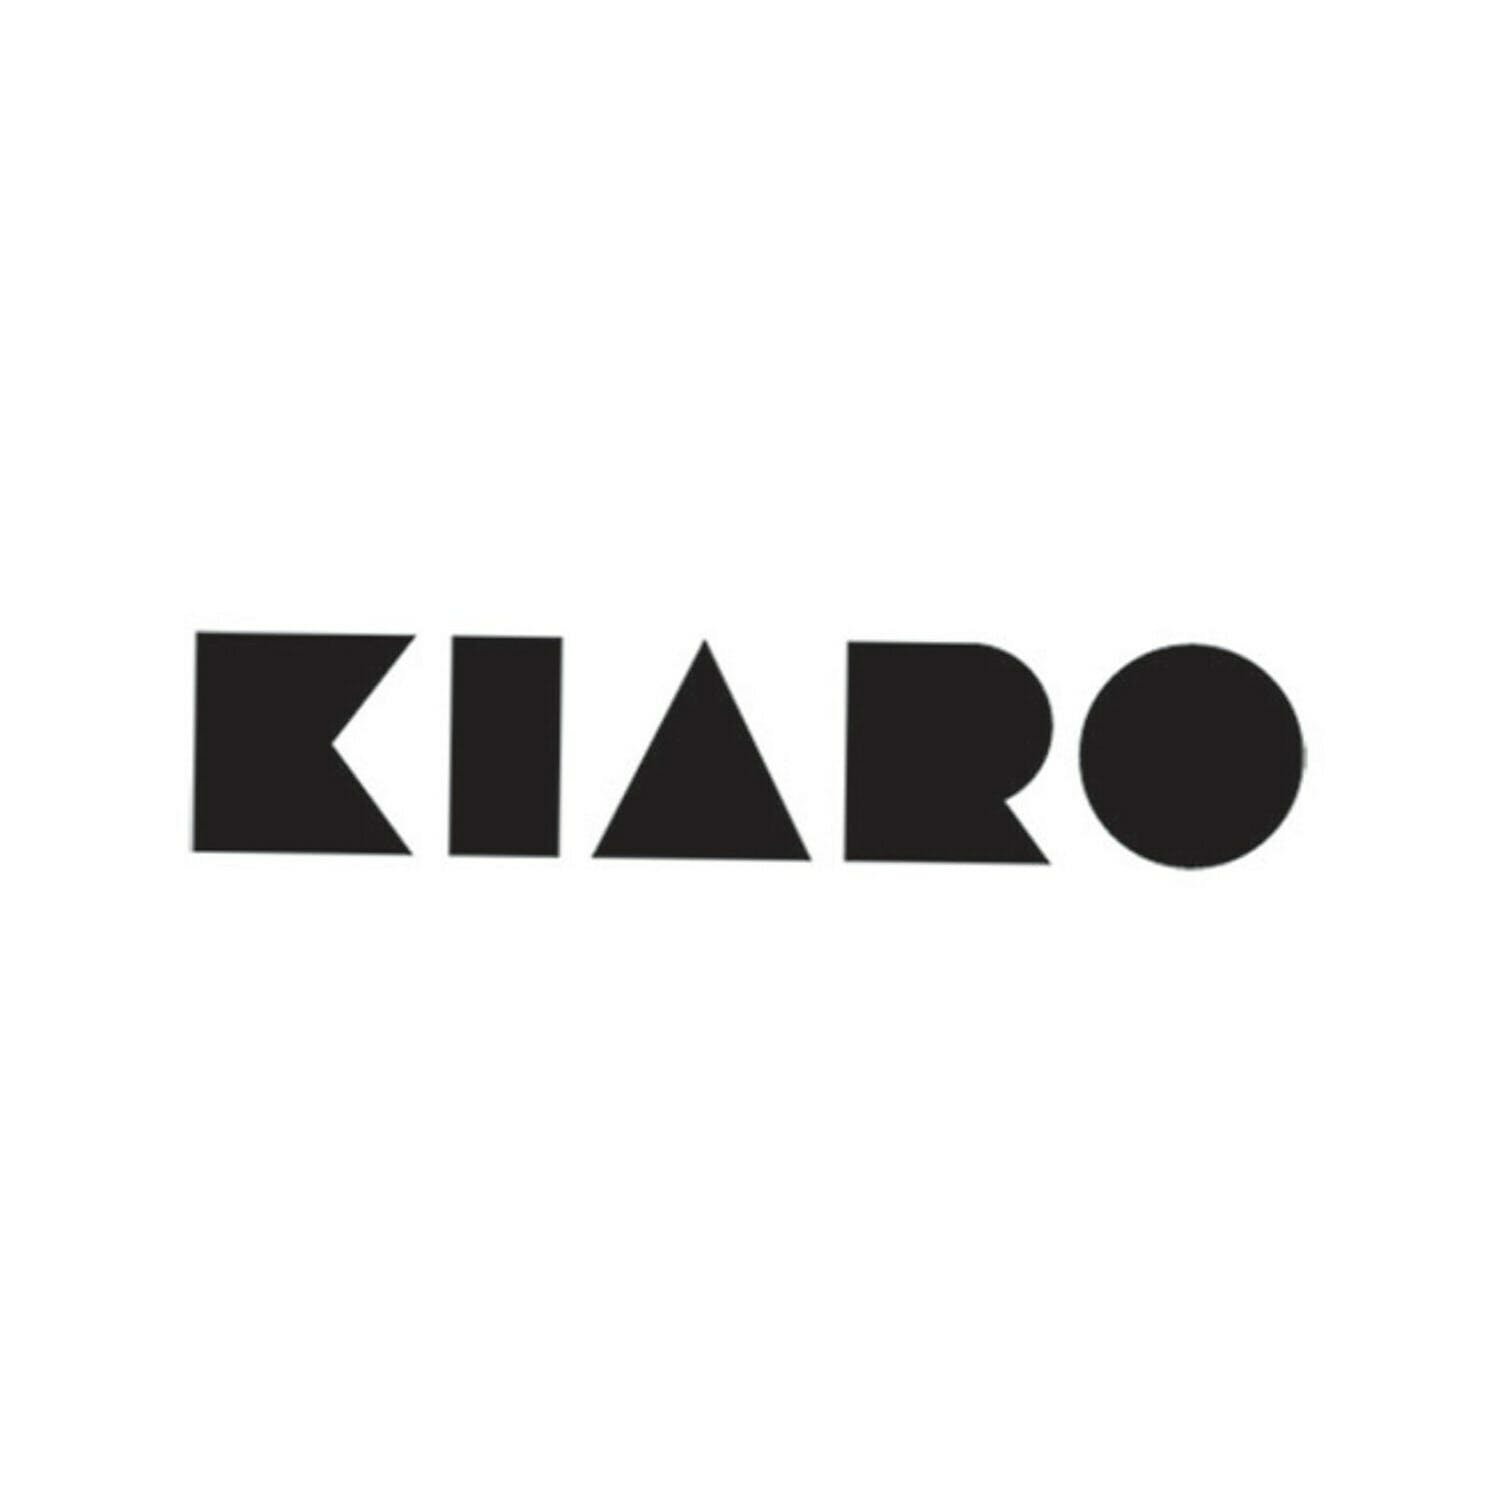 Kiaro Dispensary